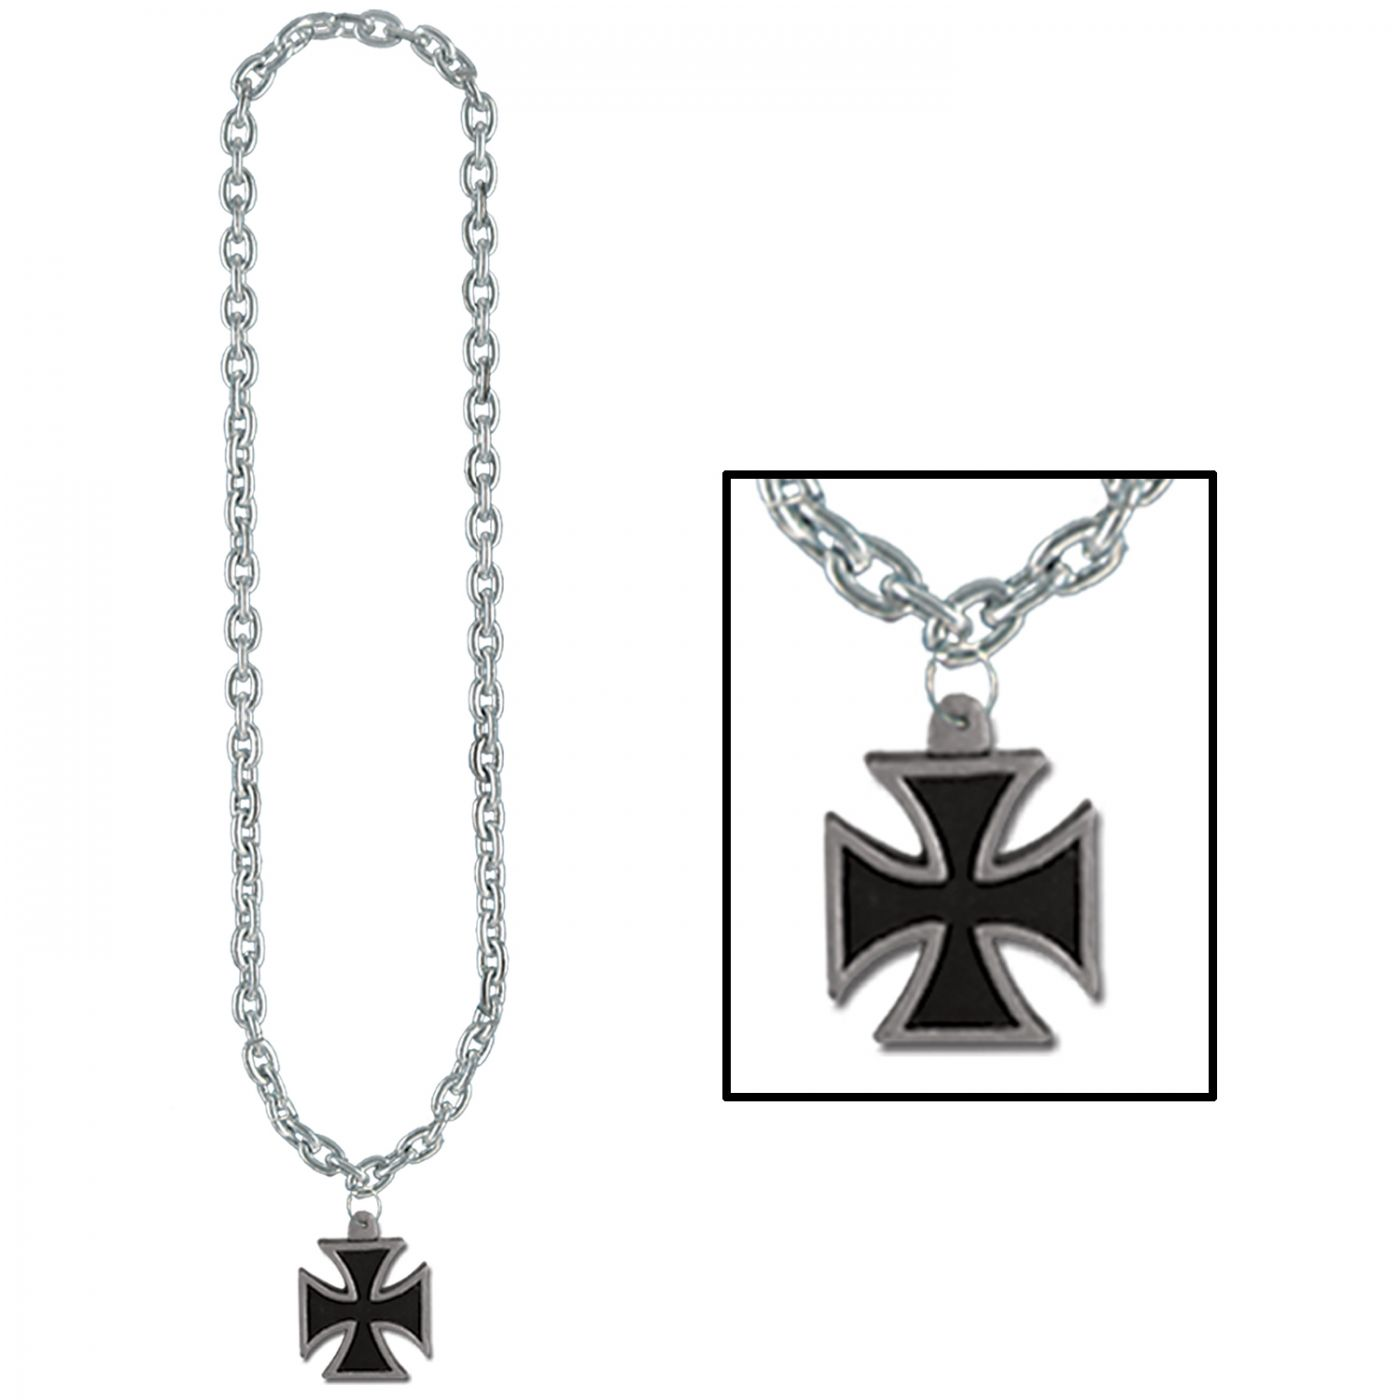 Chain Beads w/Iron Cross Medal image